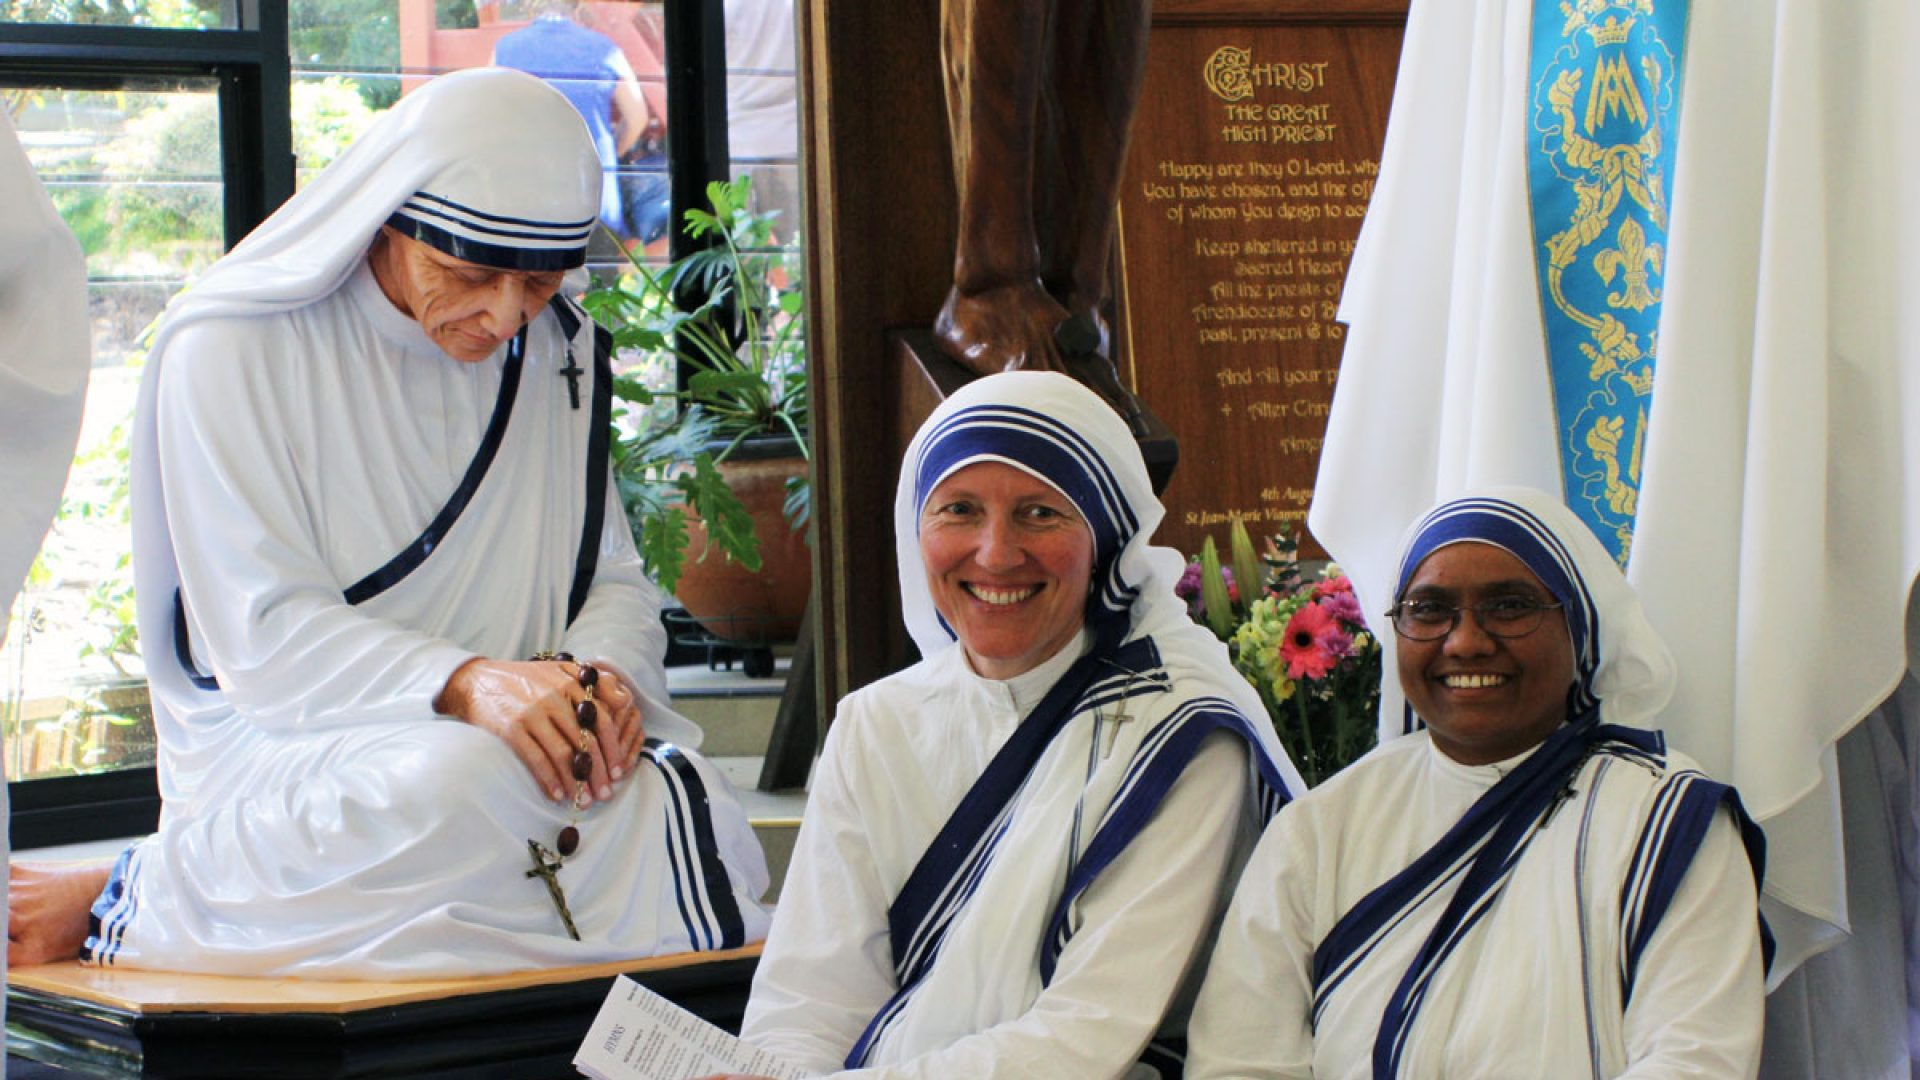 Mother Teresa Shrine